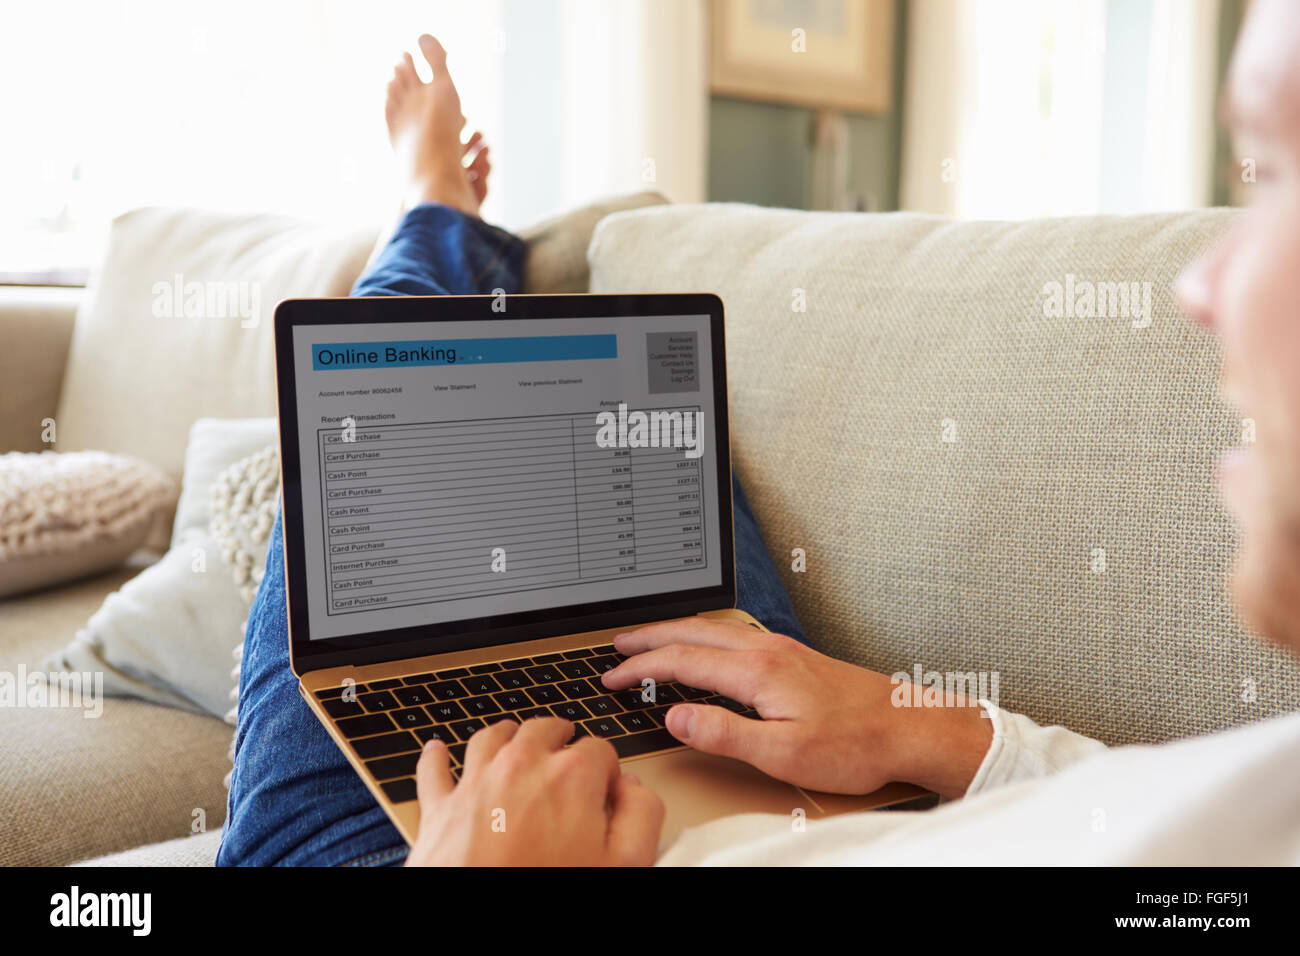 Man Relaxing On Sofa Using Internet Banking on laptop computer Photo Stock